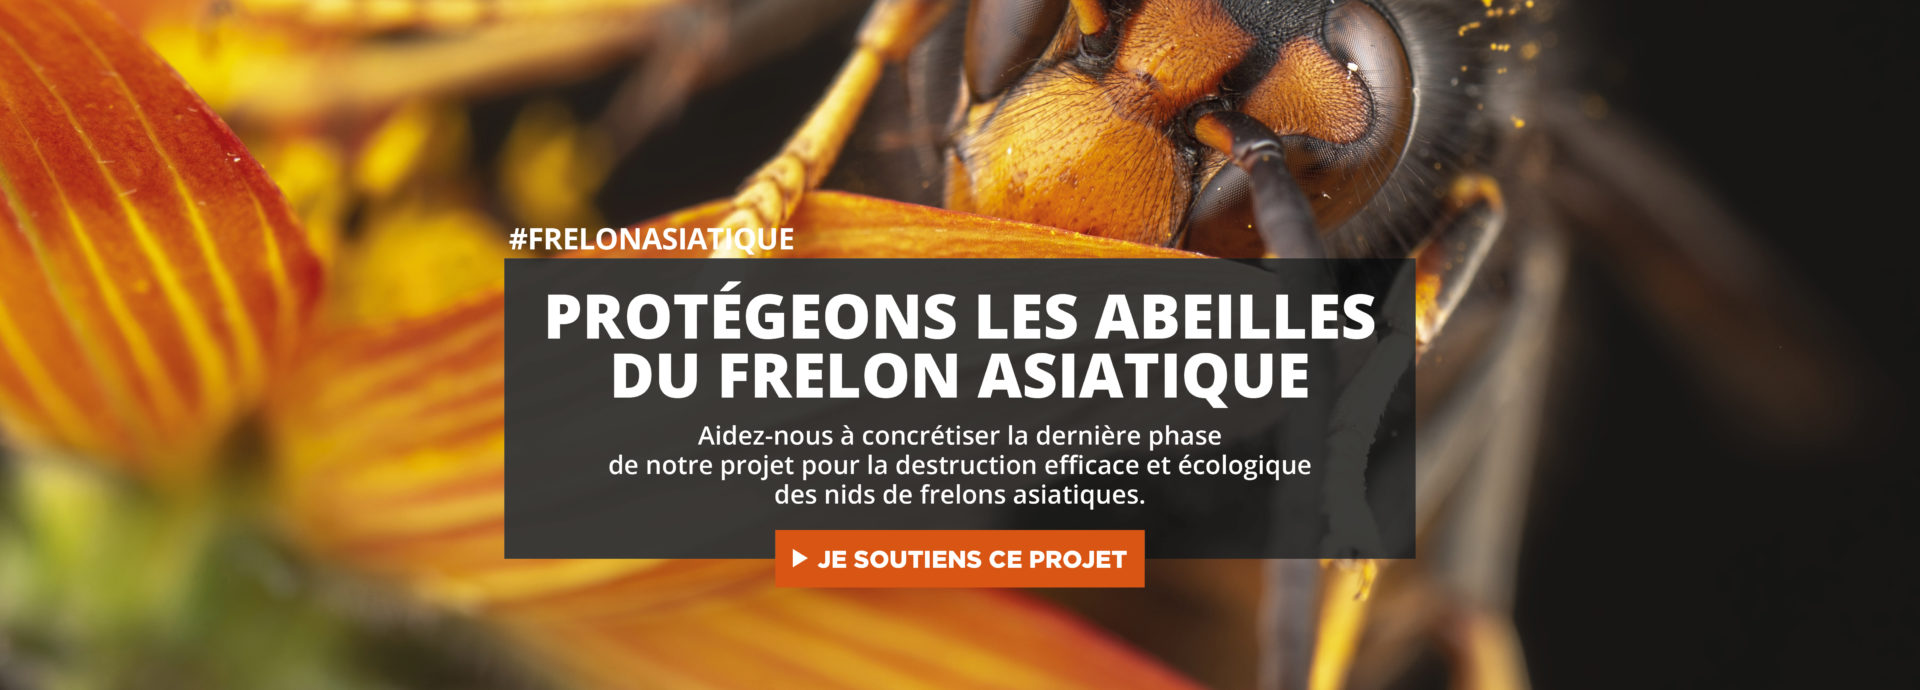 frelon-asiatique_slide_siteweb